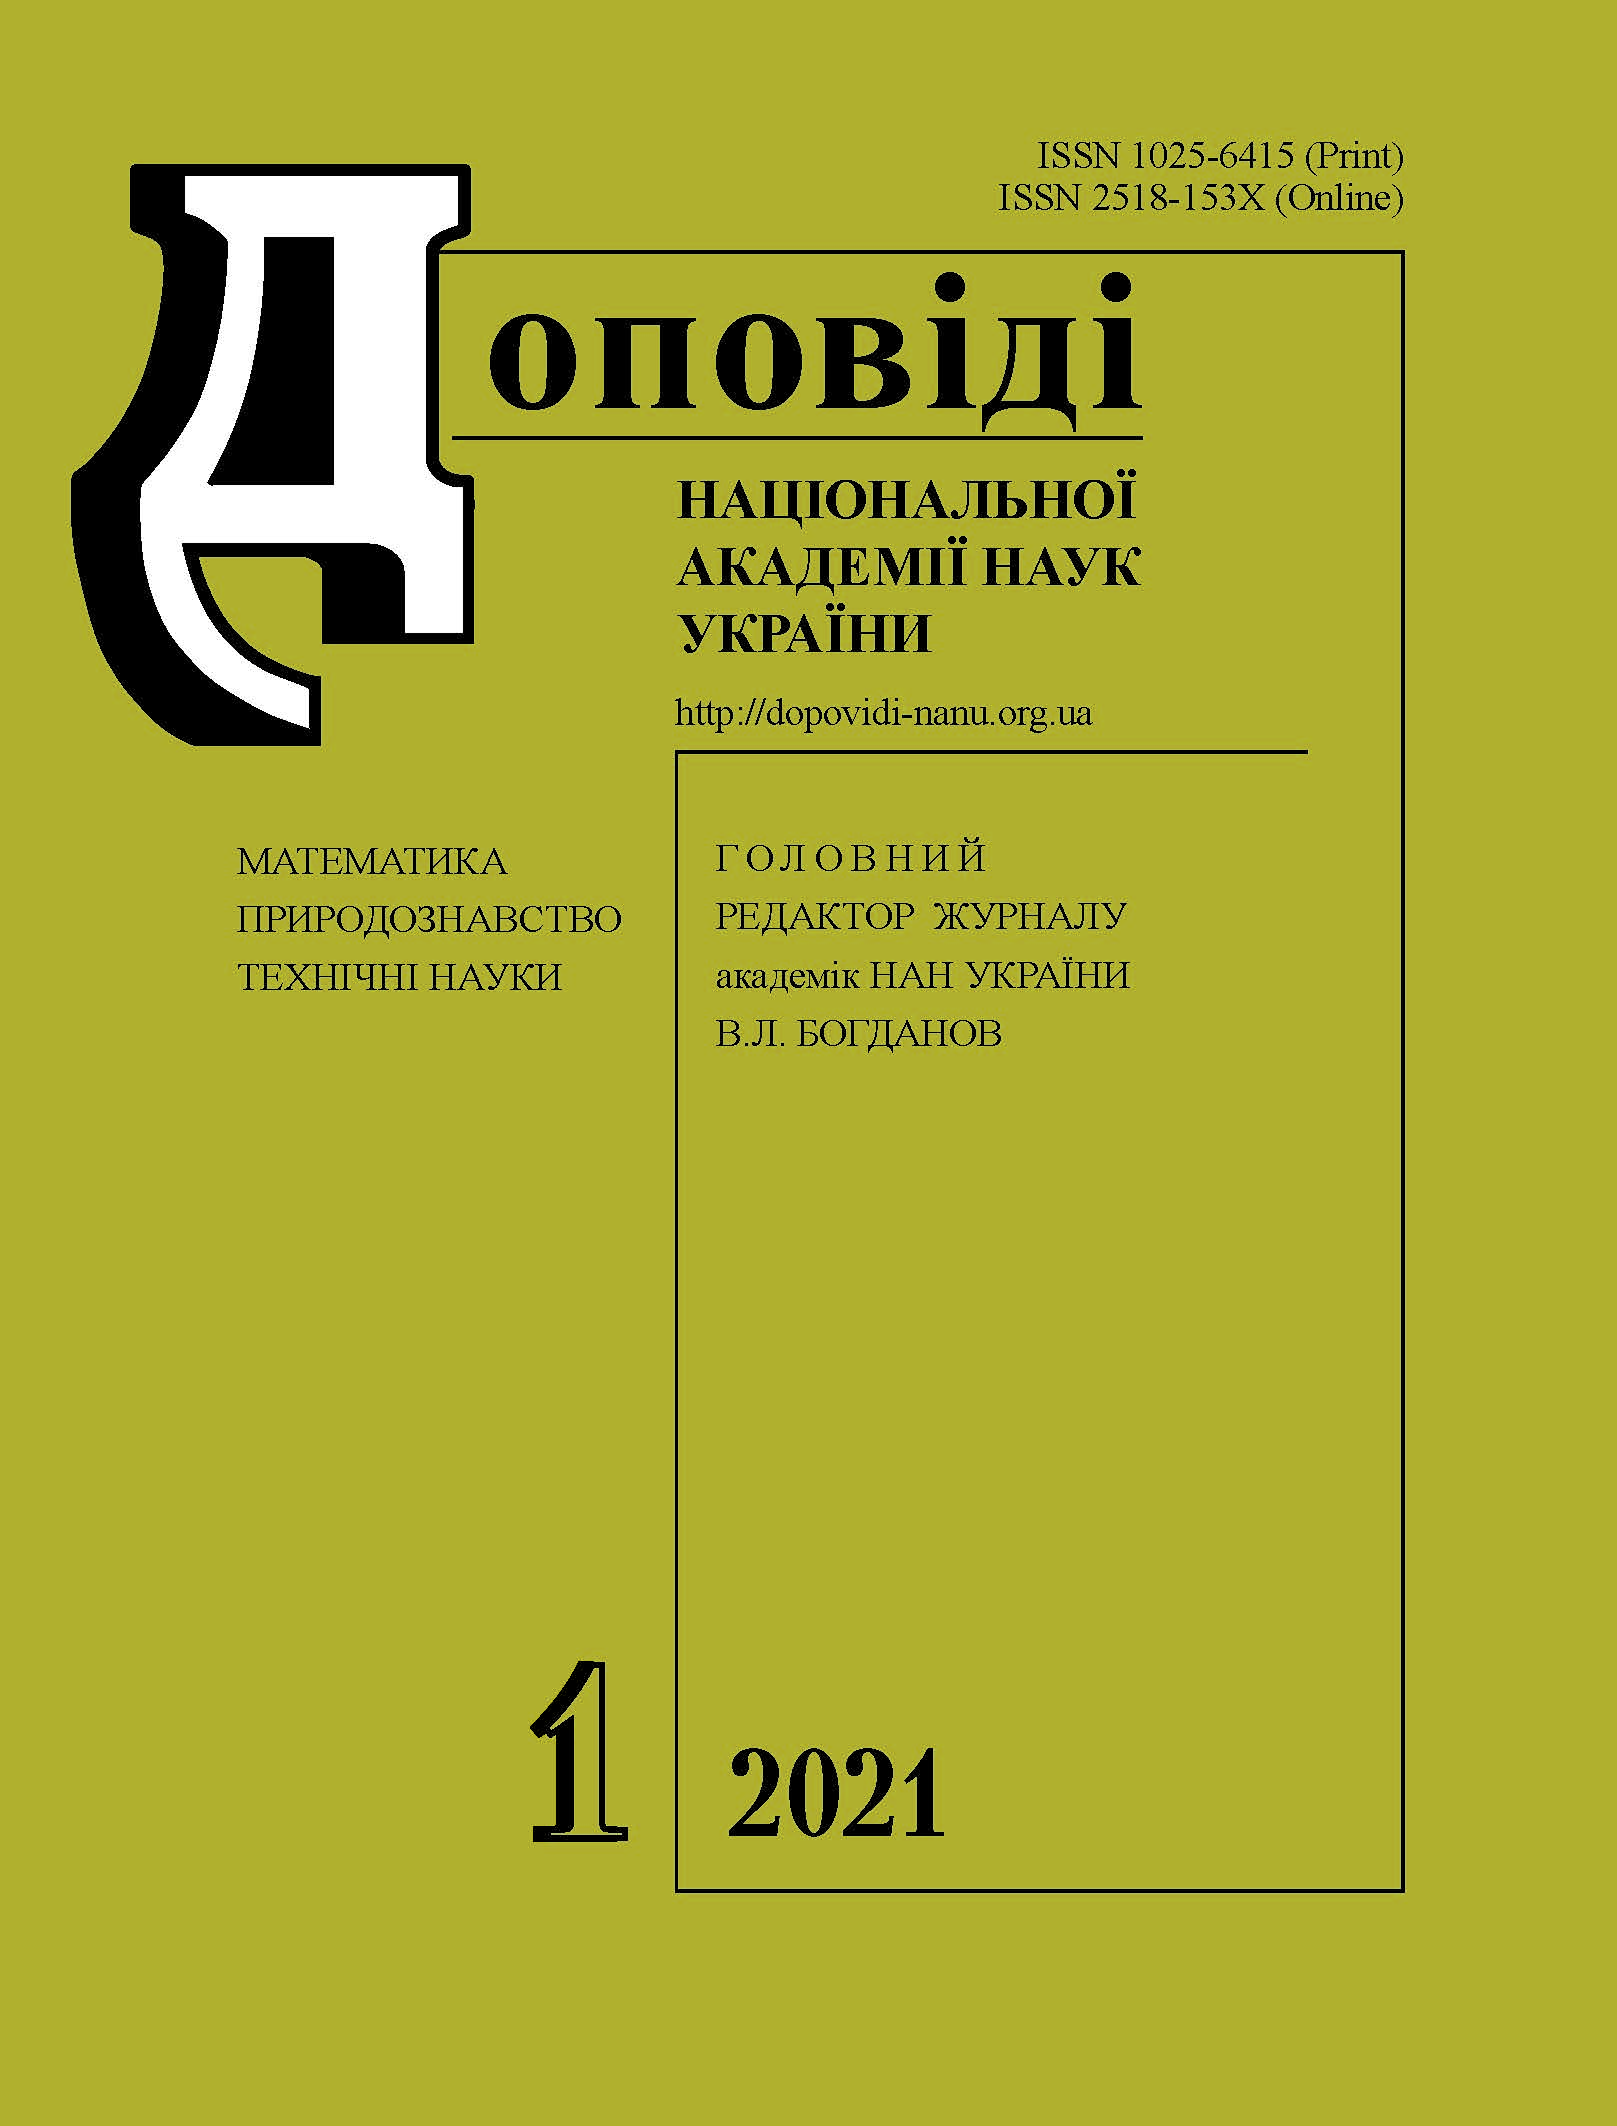 View No. 1 (2021): Reports of the National Academy of Sciences of Ukraine